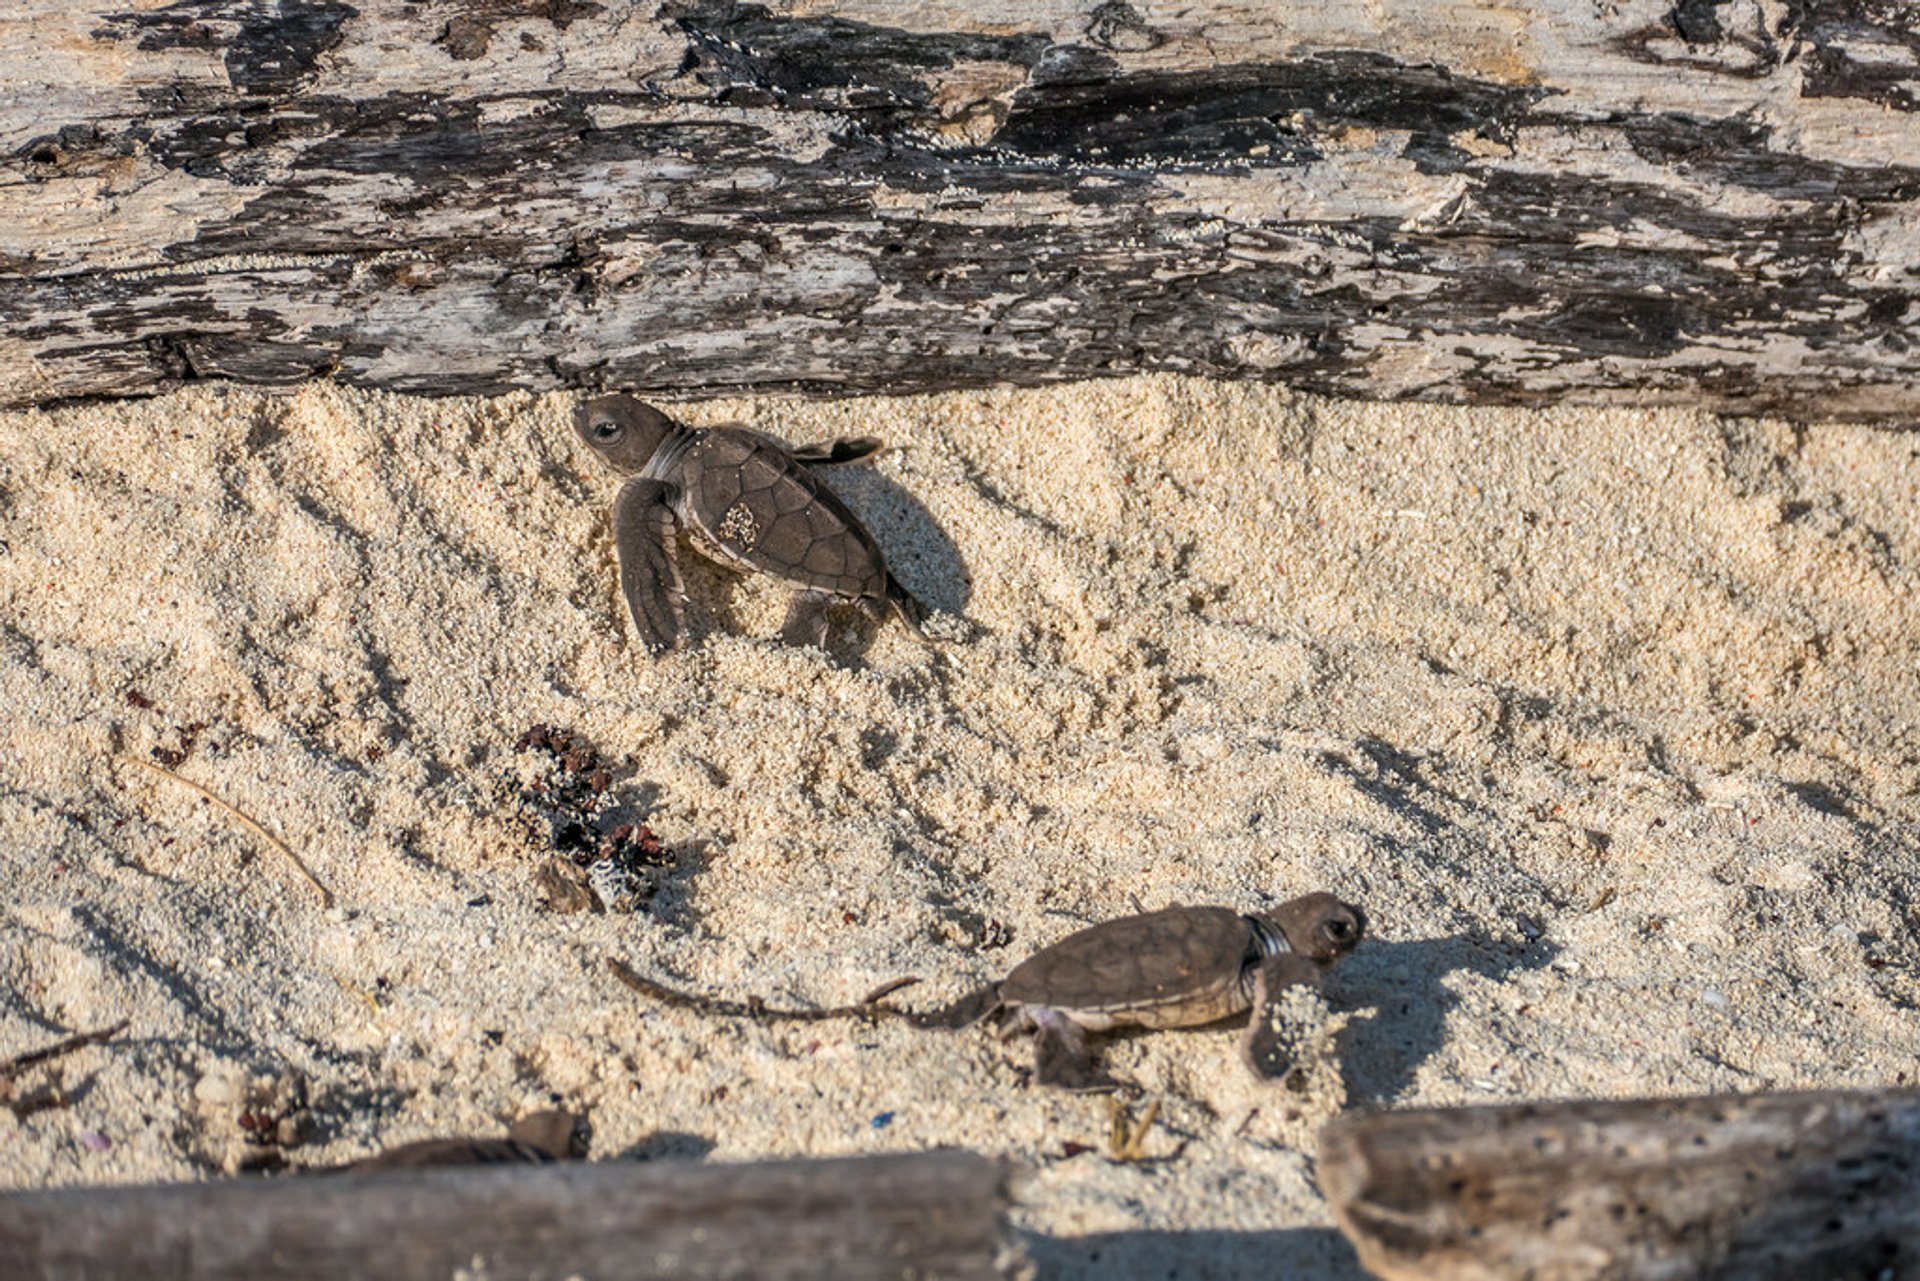 Best time to see Sea Turtle Hatchlings in Tanzania 2019